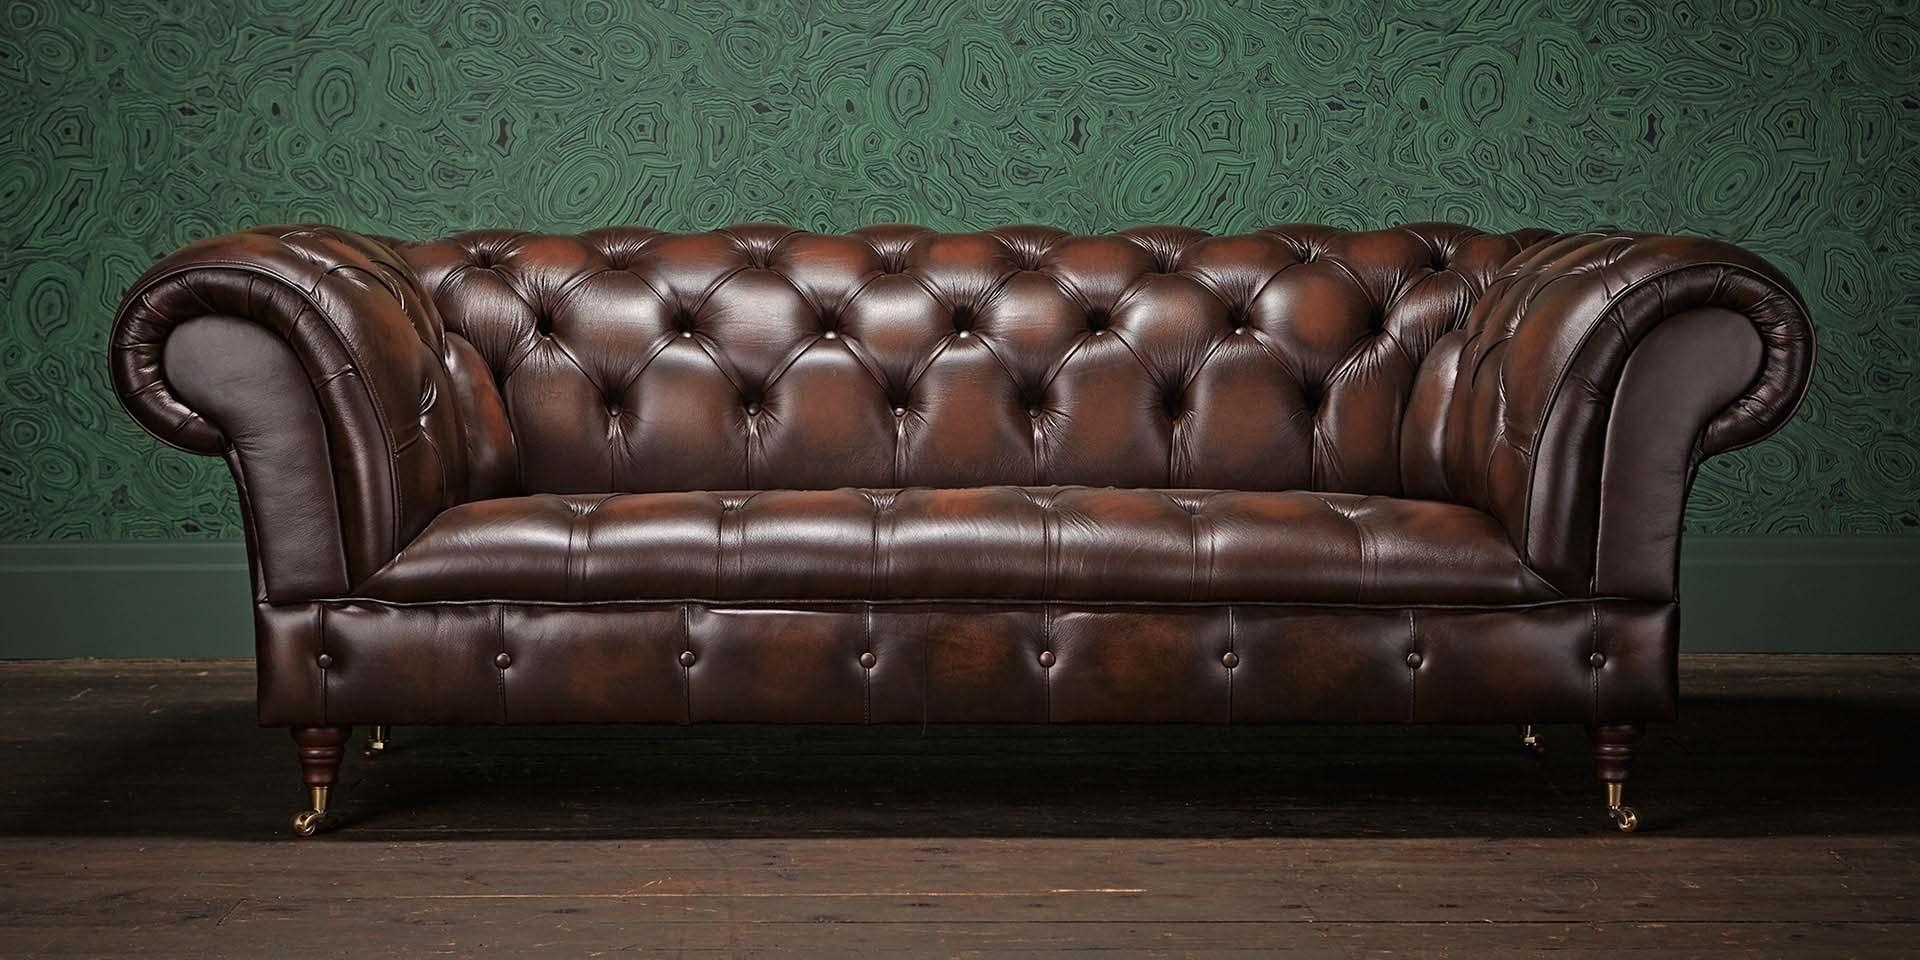 Storage Cordovan Leather Small Chesterfield Sofa 2 Small Regarding Small Chesterfield Sofas (View 5 of 20)